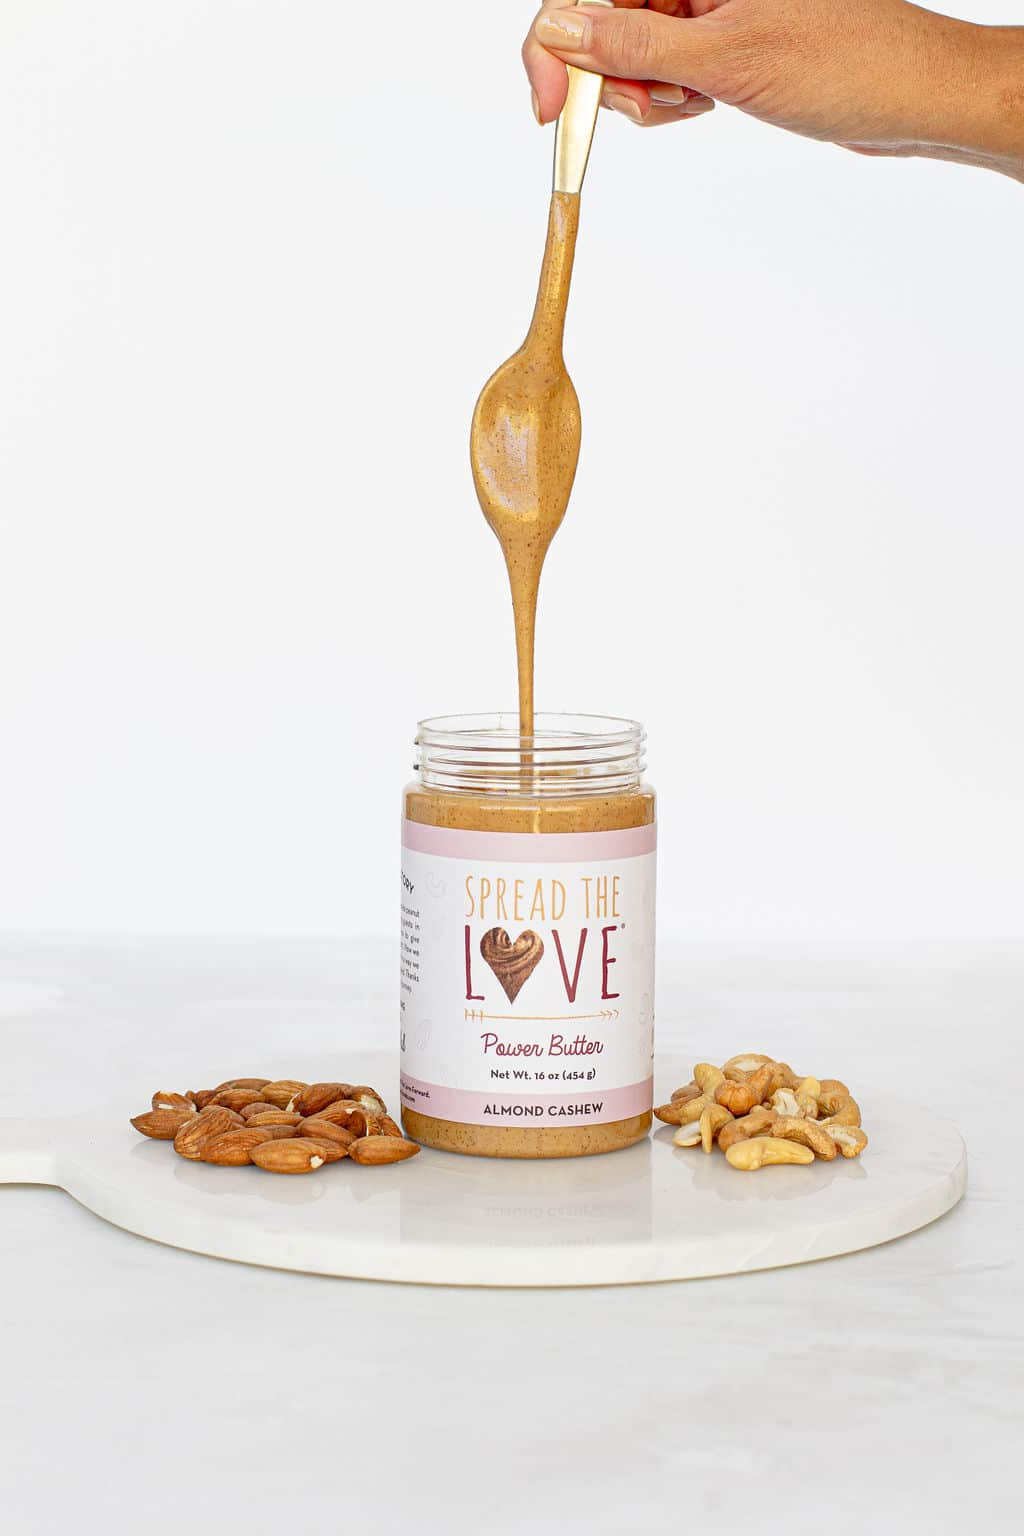 Spread The Love Announces Launch of Power Butters